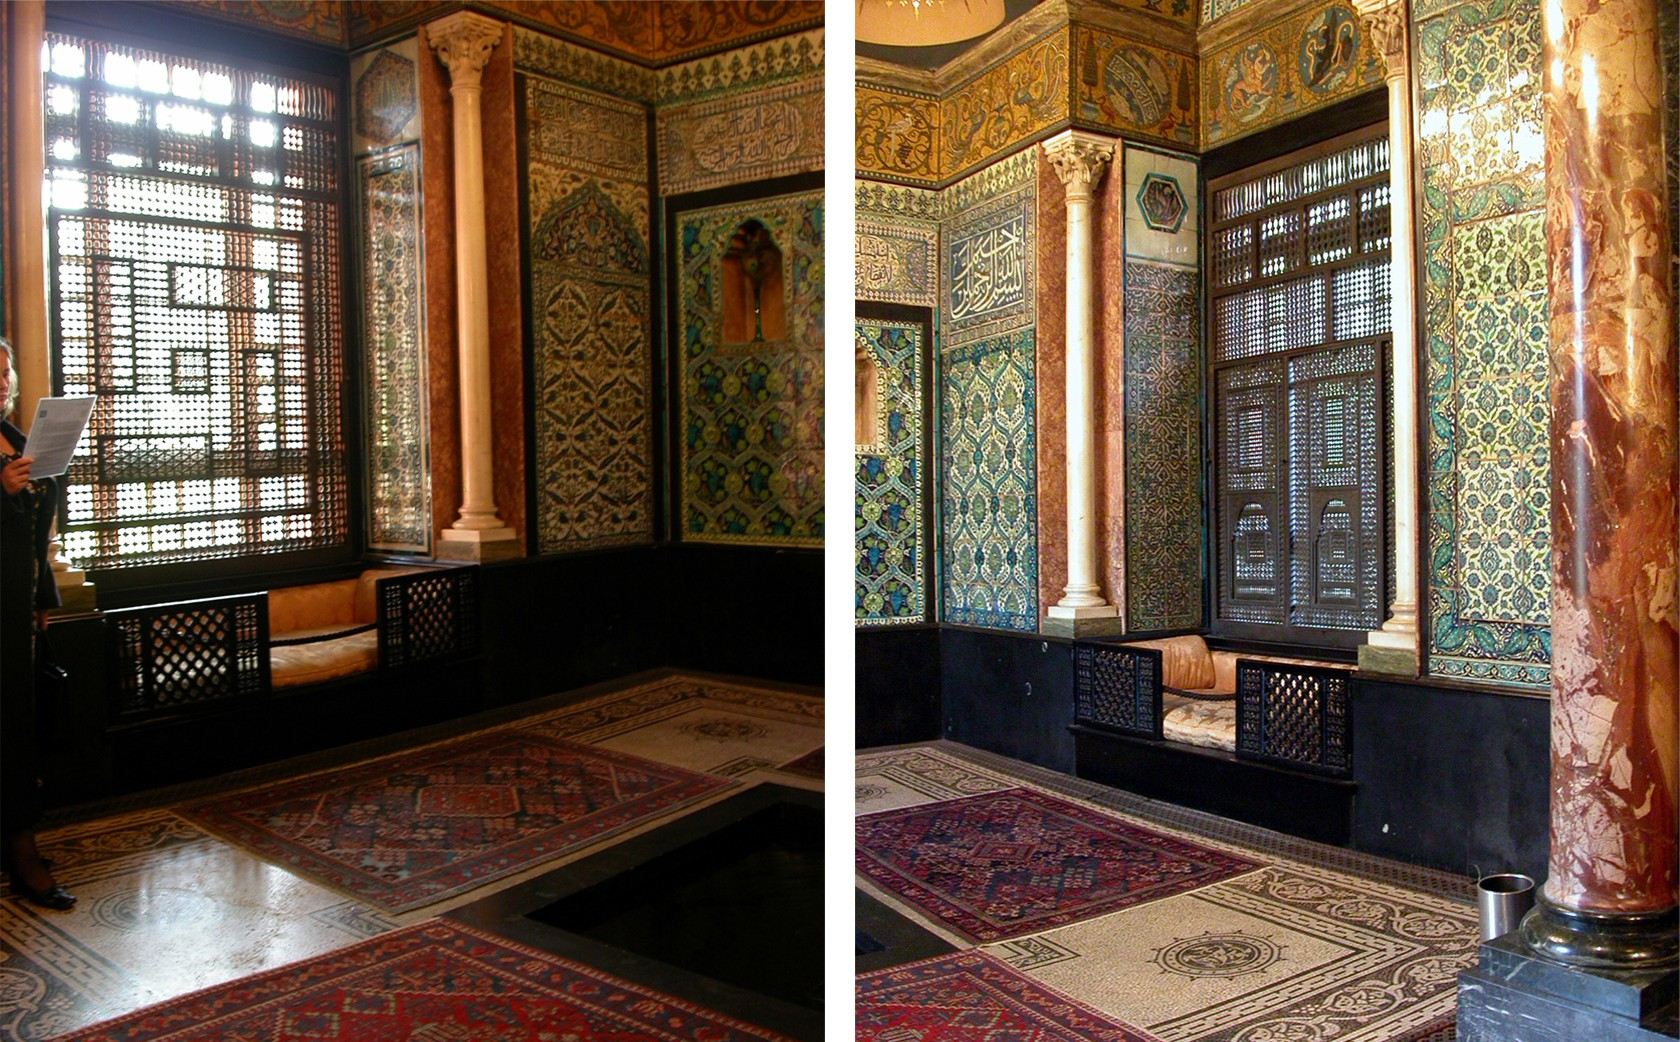 the Damascene Musharabiyeh Islamic Screens in the Arab Hall designed by Leighton's architect George Aitchison.